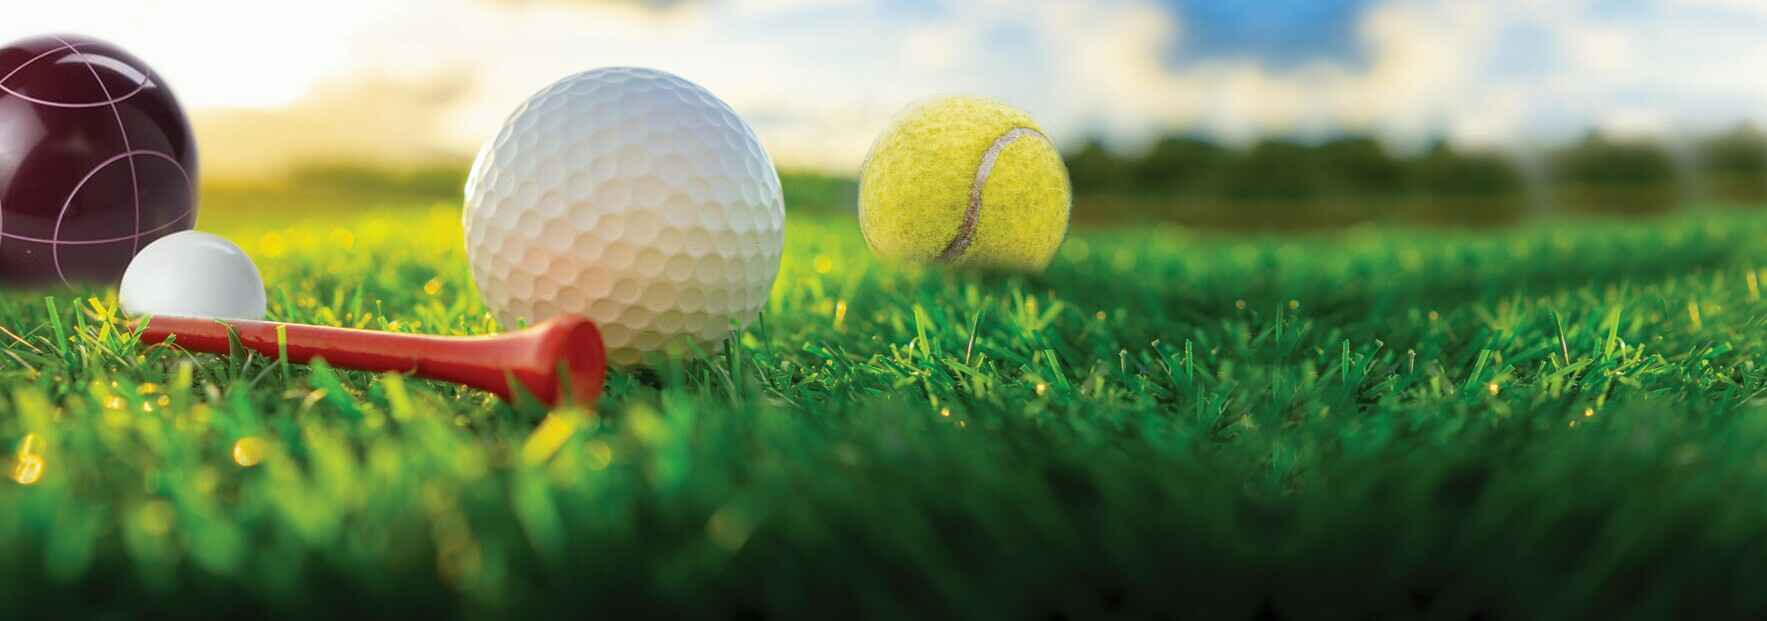 """5th Annual """"Laughs on the Links"""" Golf, Tennis & Bocce Outing 2021 image"""